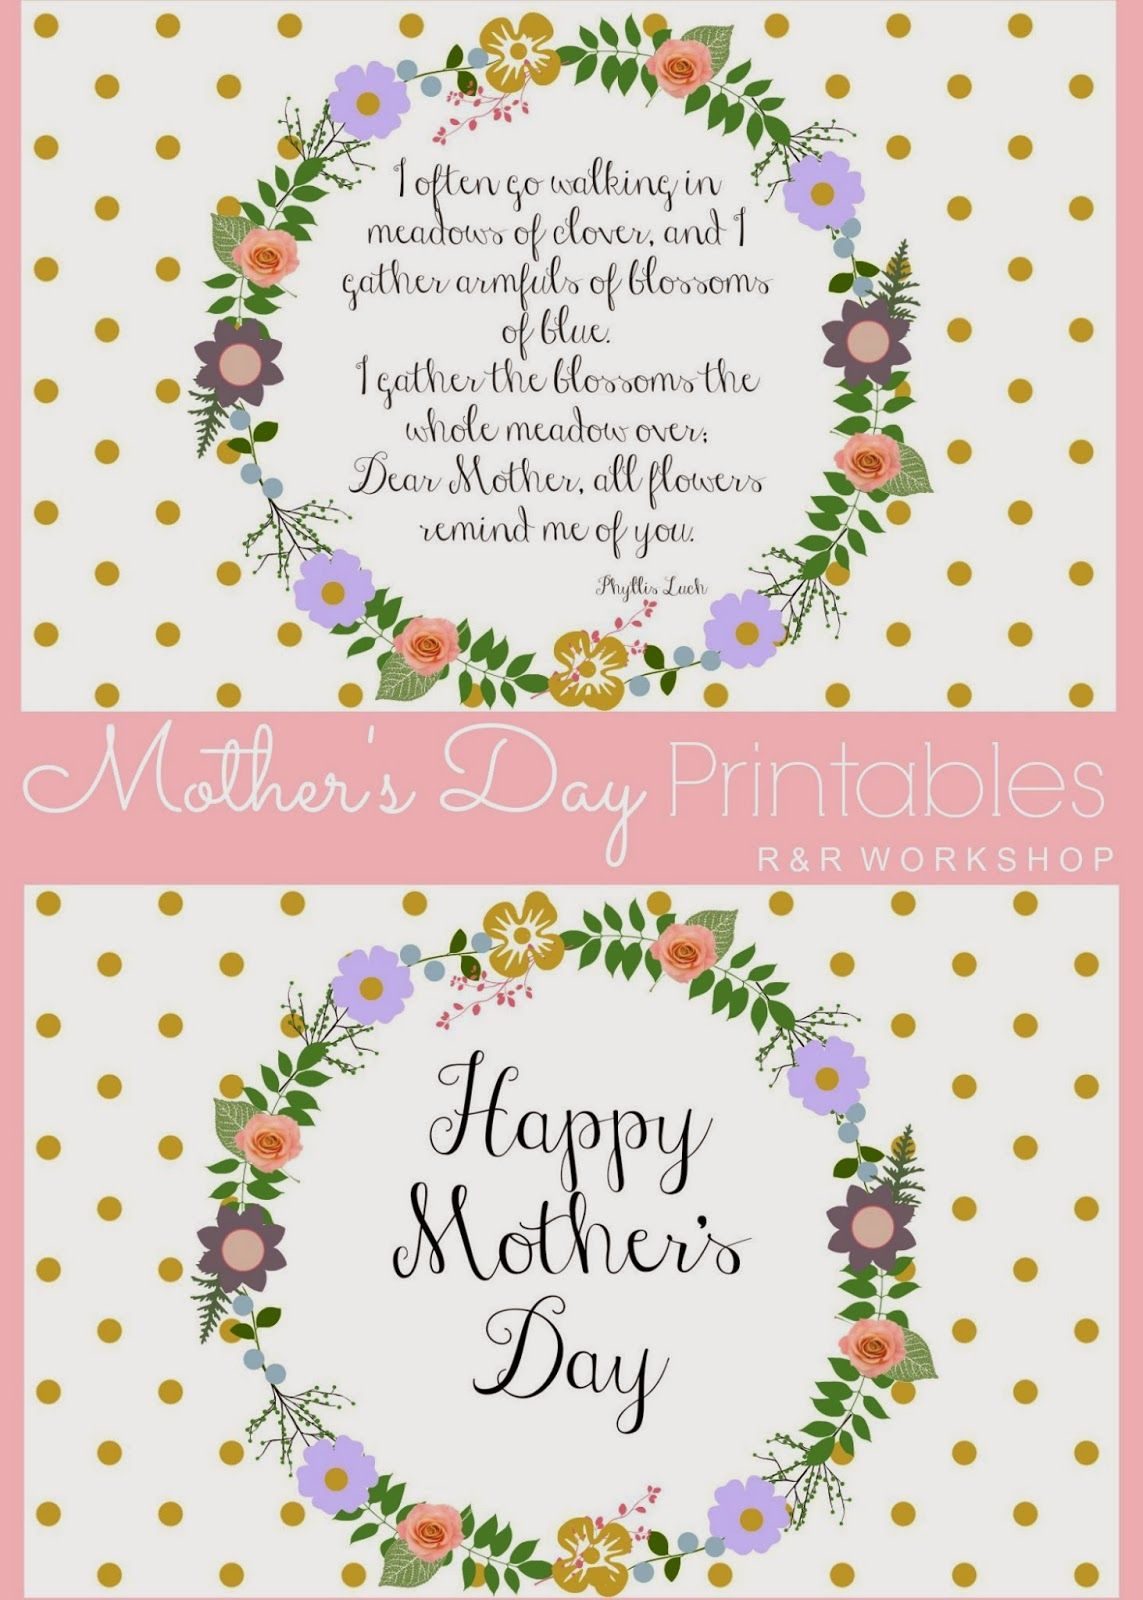 Mother's Day Poem And Free Printables   Live It. Love It. Lds - Free Printable Mothers Day Poems